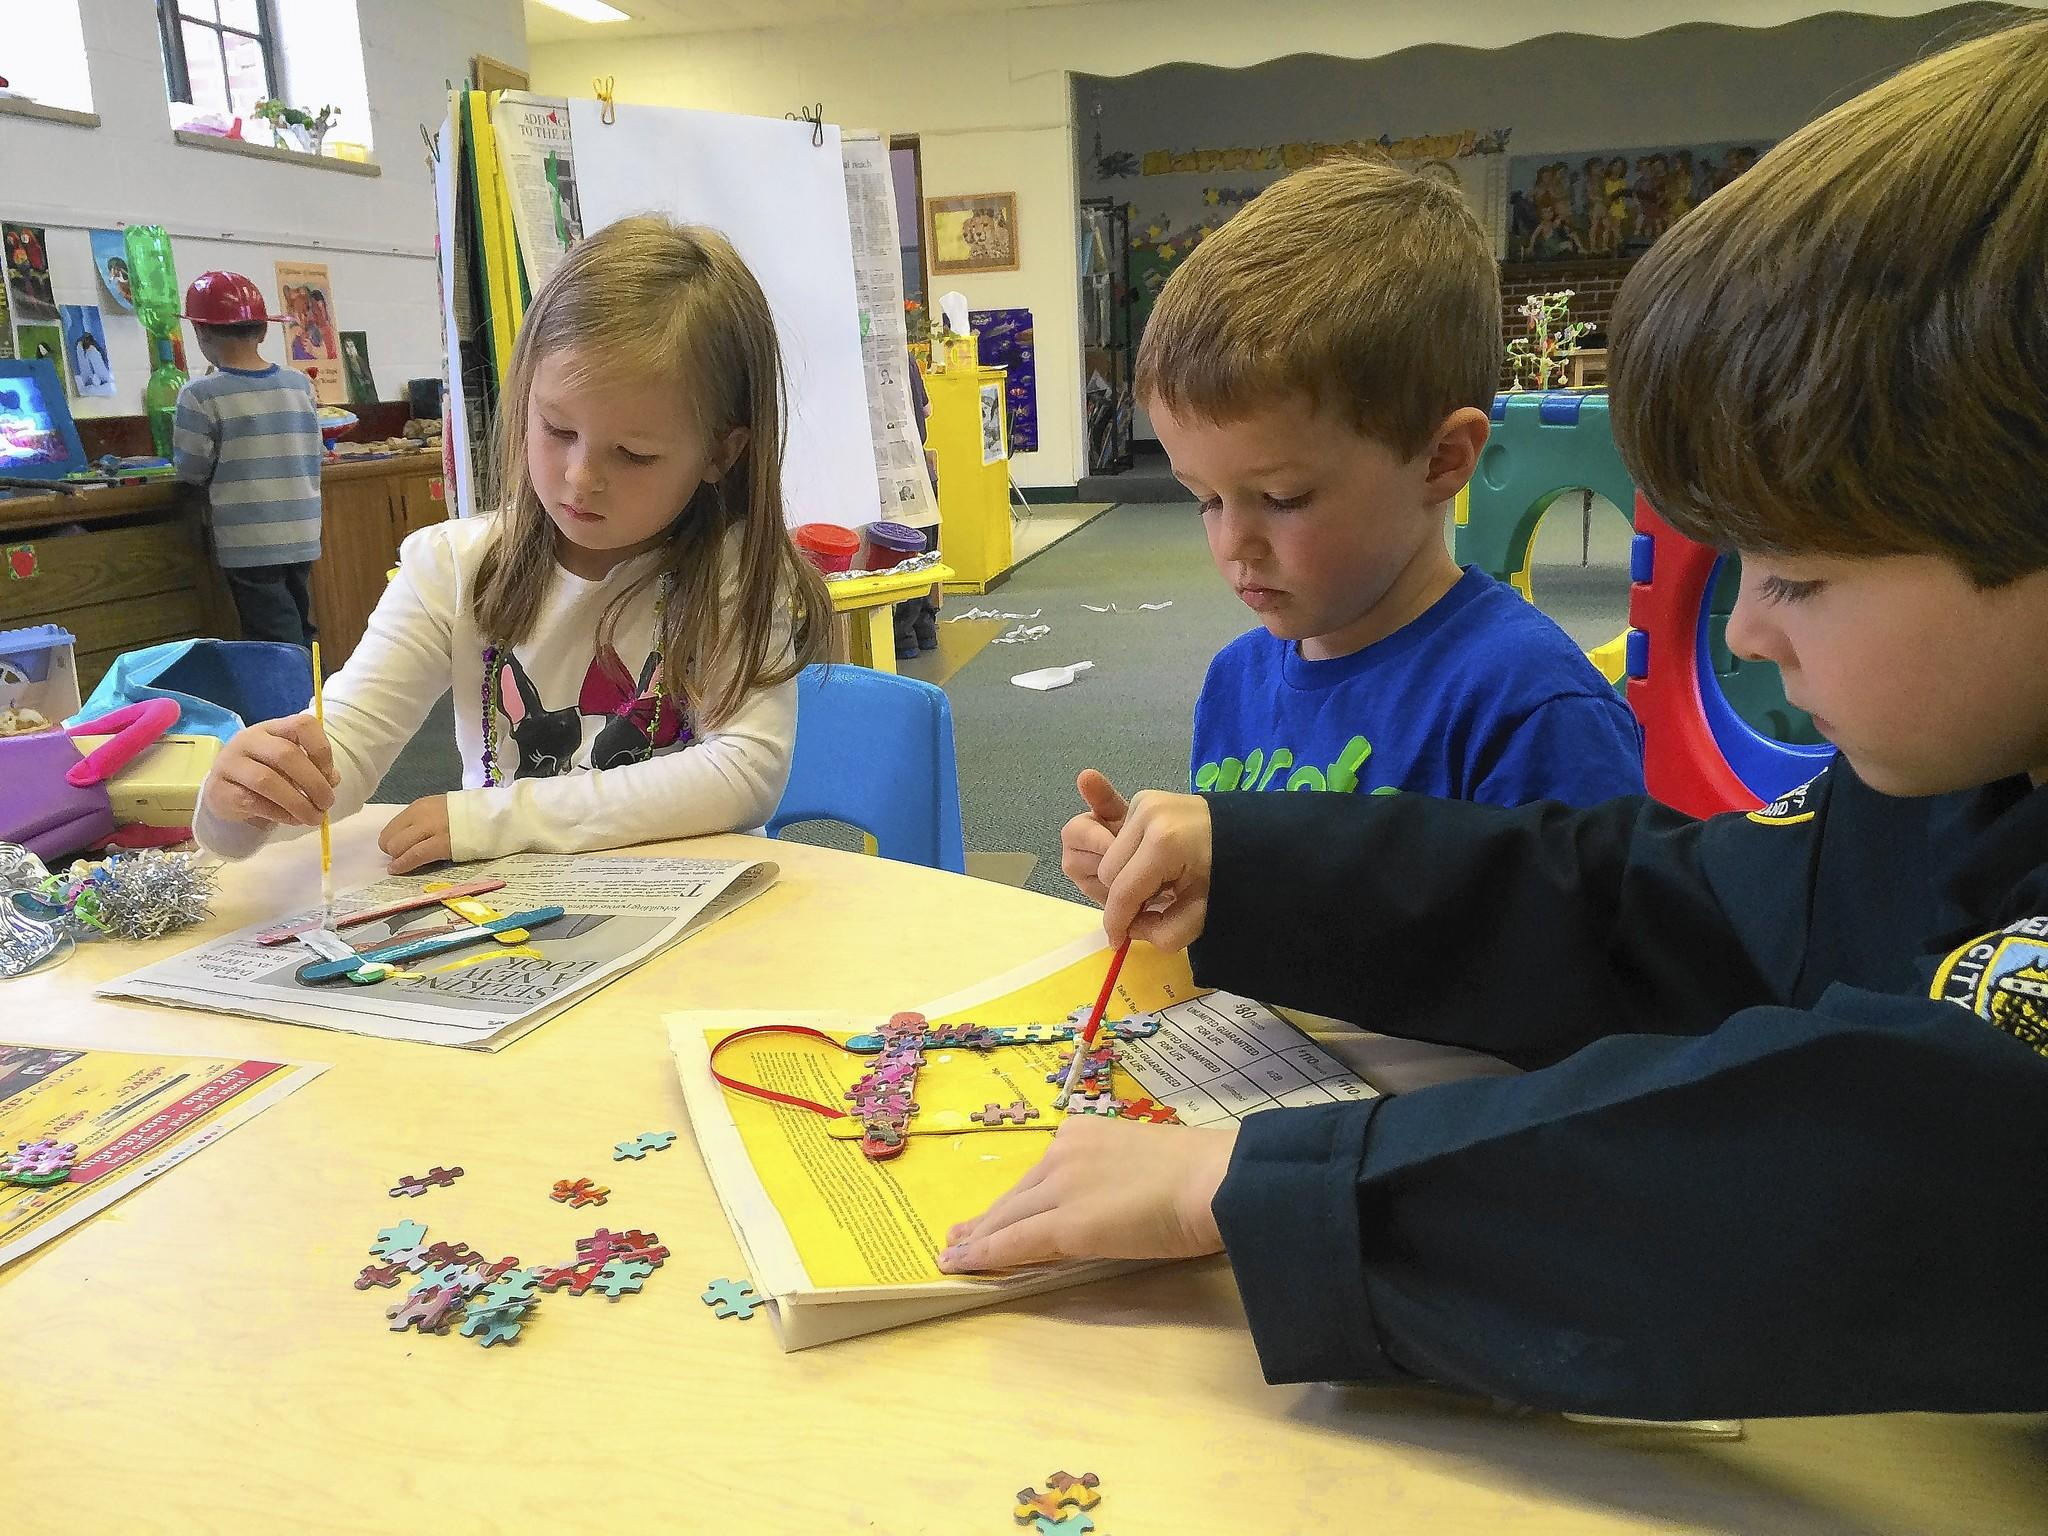 The Loretto Early Childhood Center in Wheaton will close its door this month becuase of declining enrollment.